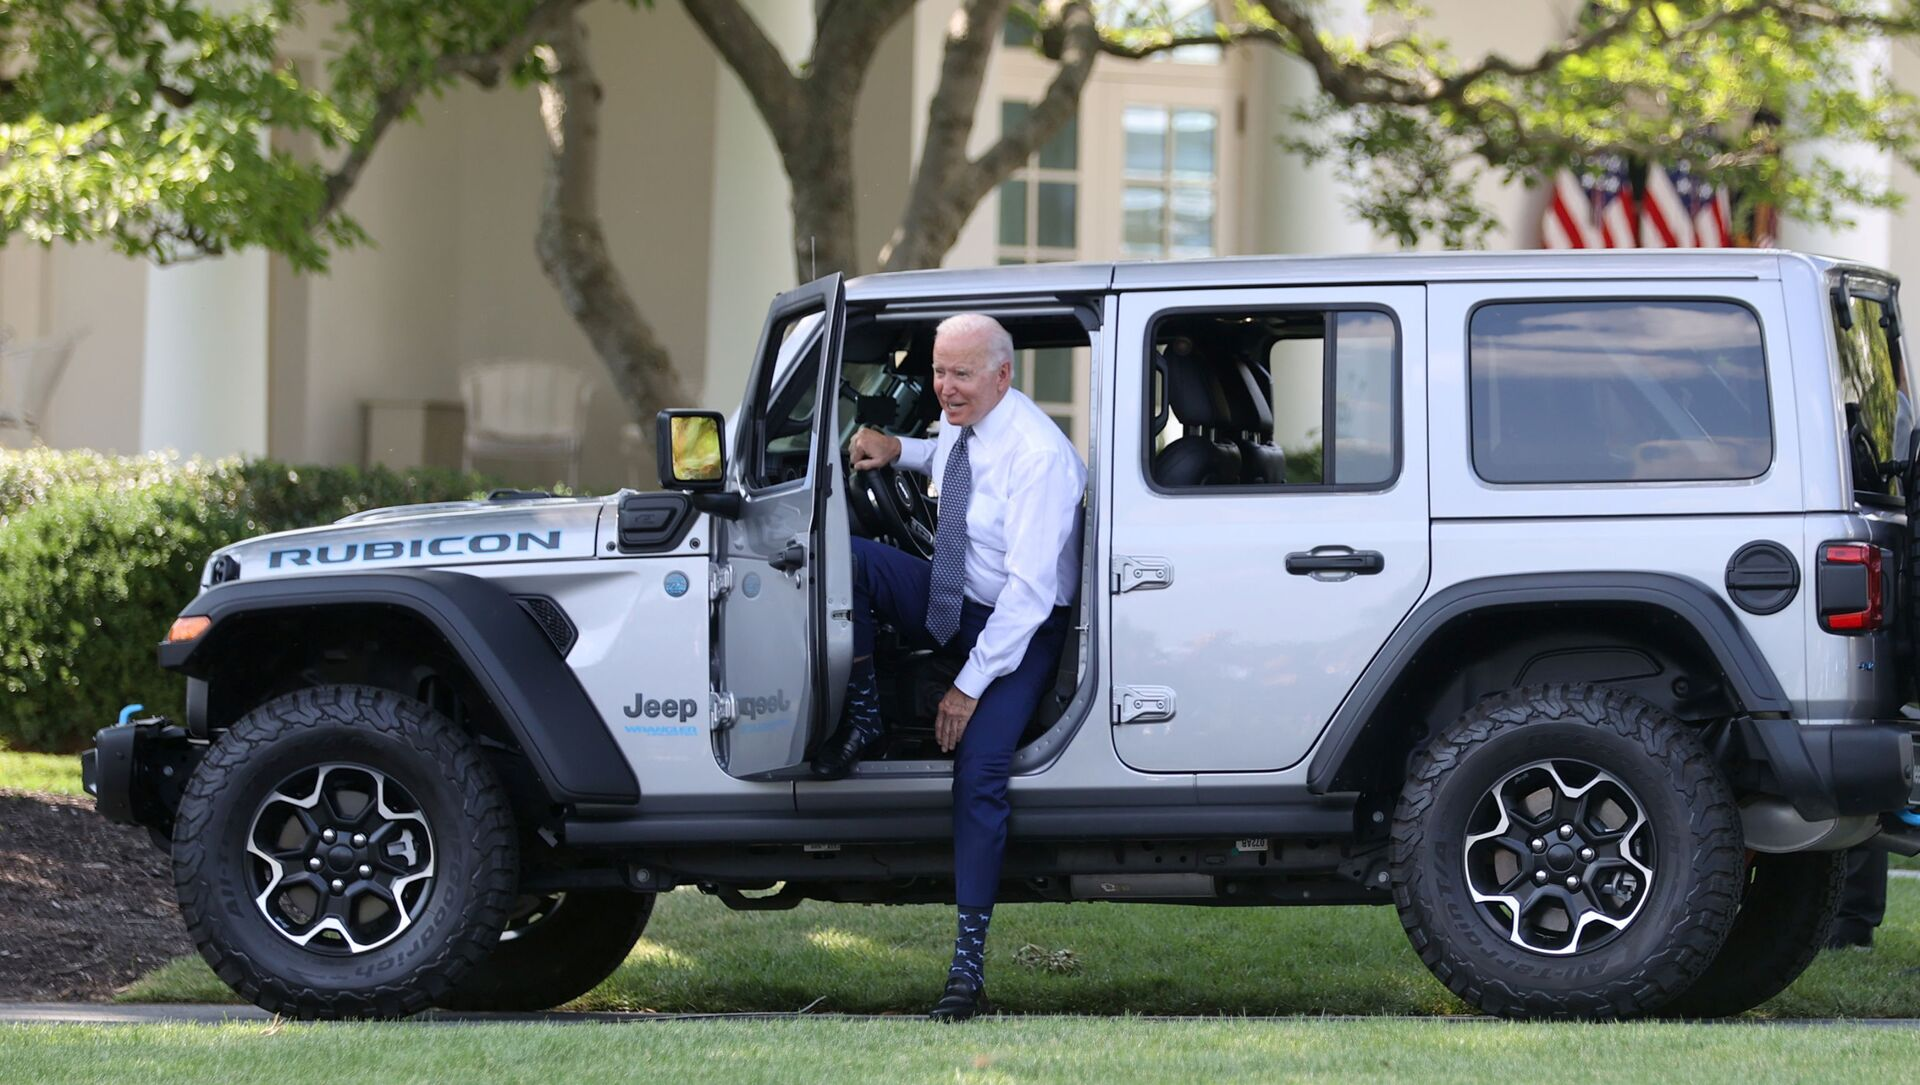 U.S. President Joe Biden hops out after test driving a Jeep Wrangler 4xe Rubicon during an event for clean cars and trucks, and signs an executive order on transformaing the country's auto fleet at the White House in Washington, U.S. August 5, 2021. - Sputnik International, 1920, 05.08.2021